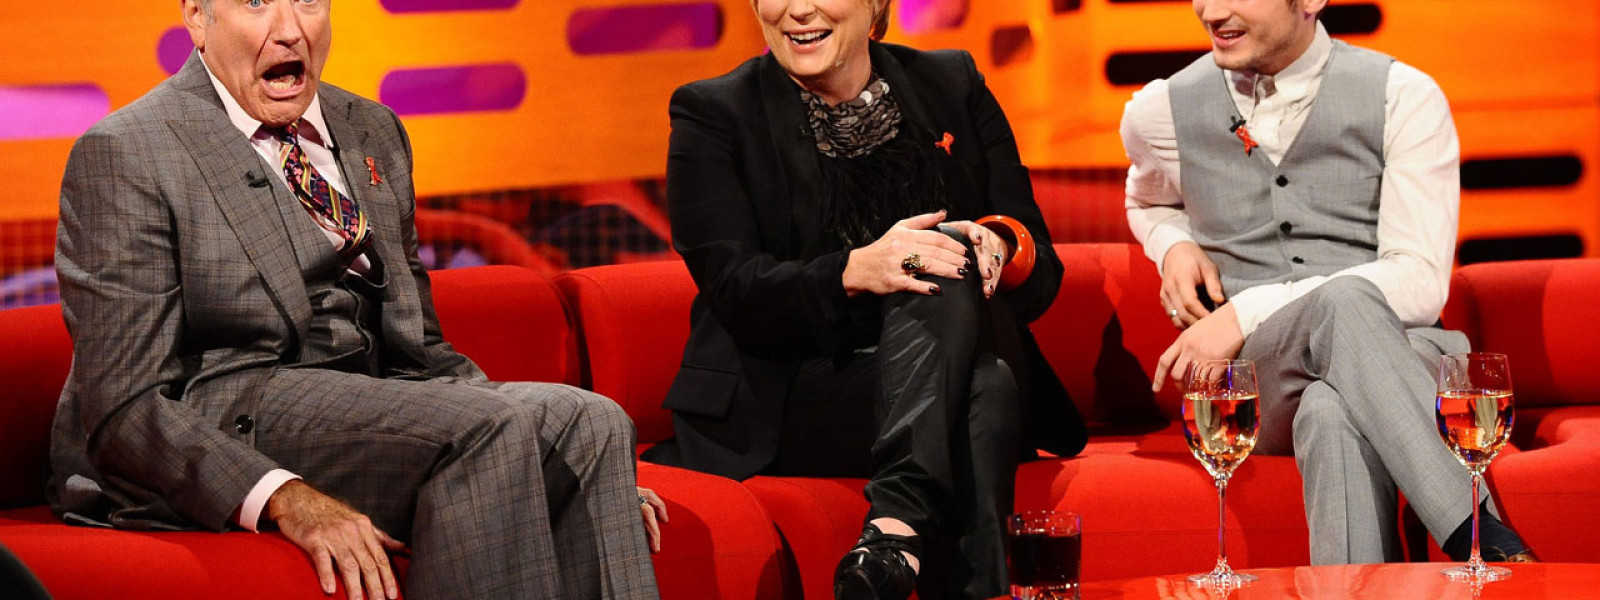 thegrahamnortonshow_photo_s10_e05_03_web